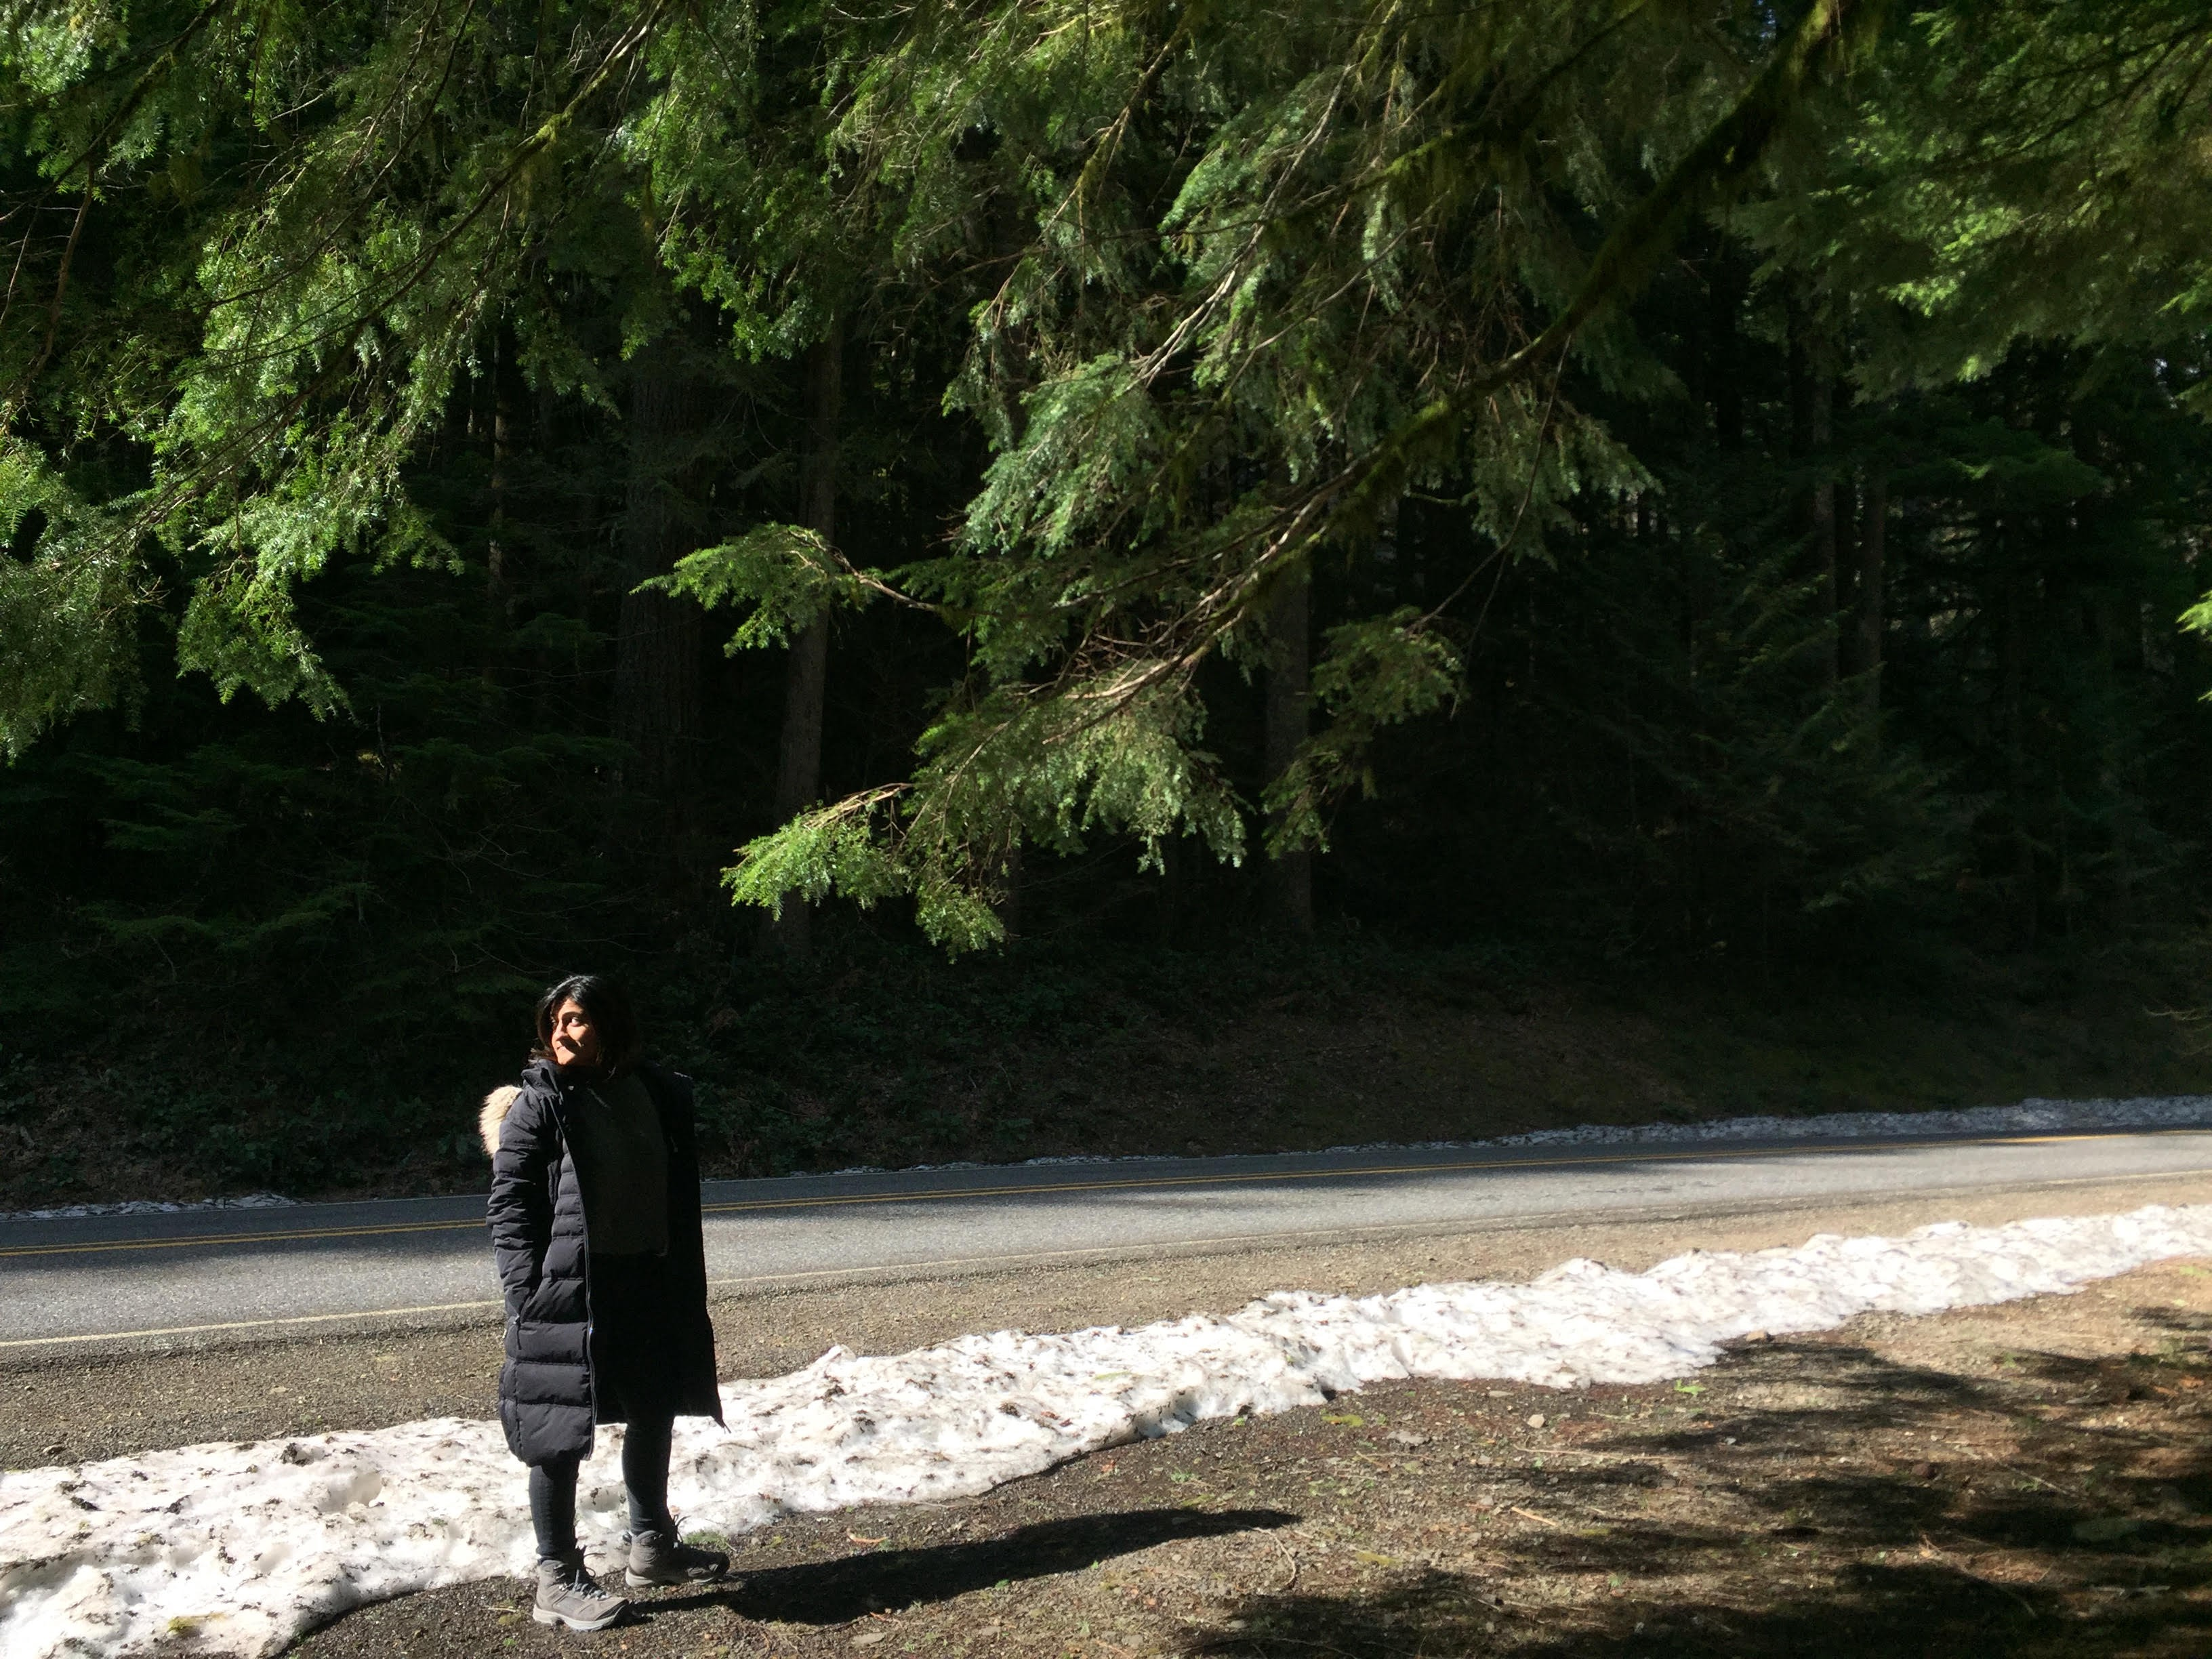 A woman stands on the side of the road with snow nearby, with the branches of an evergreen tree above her.